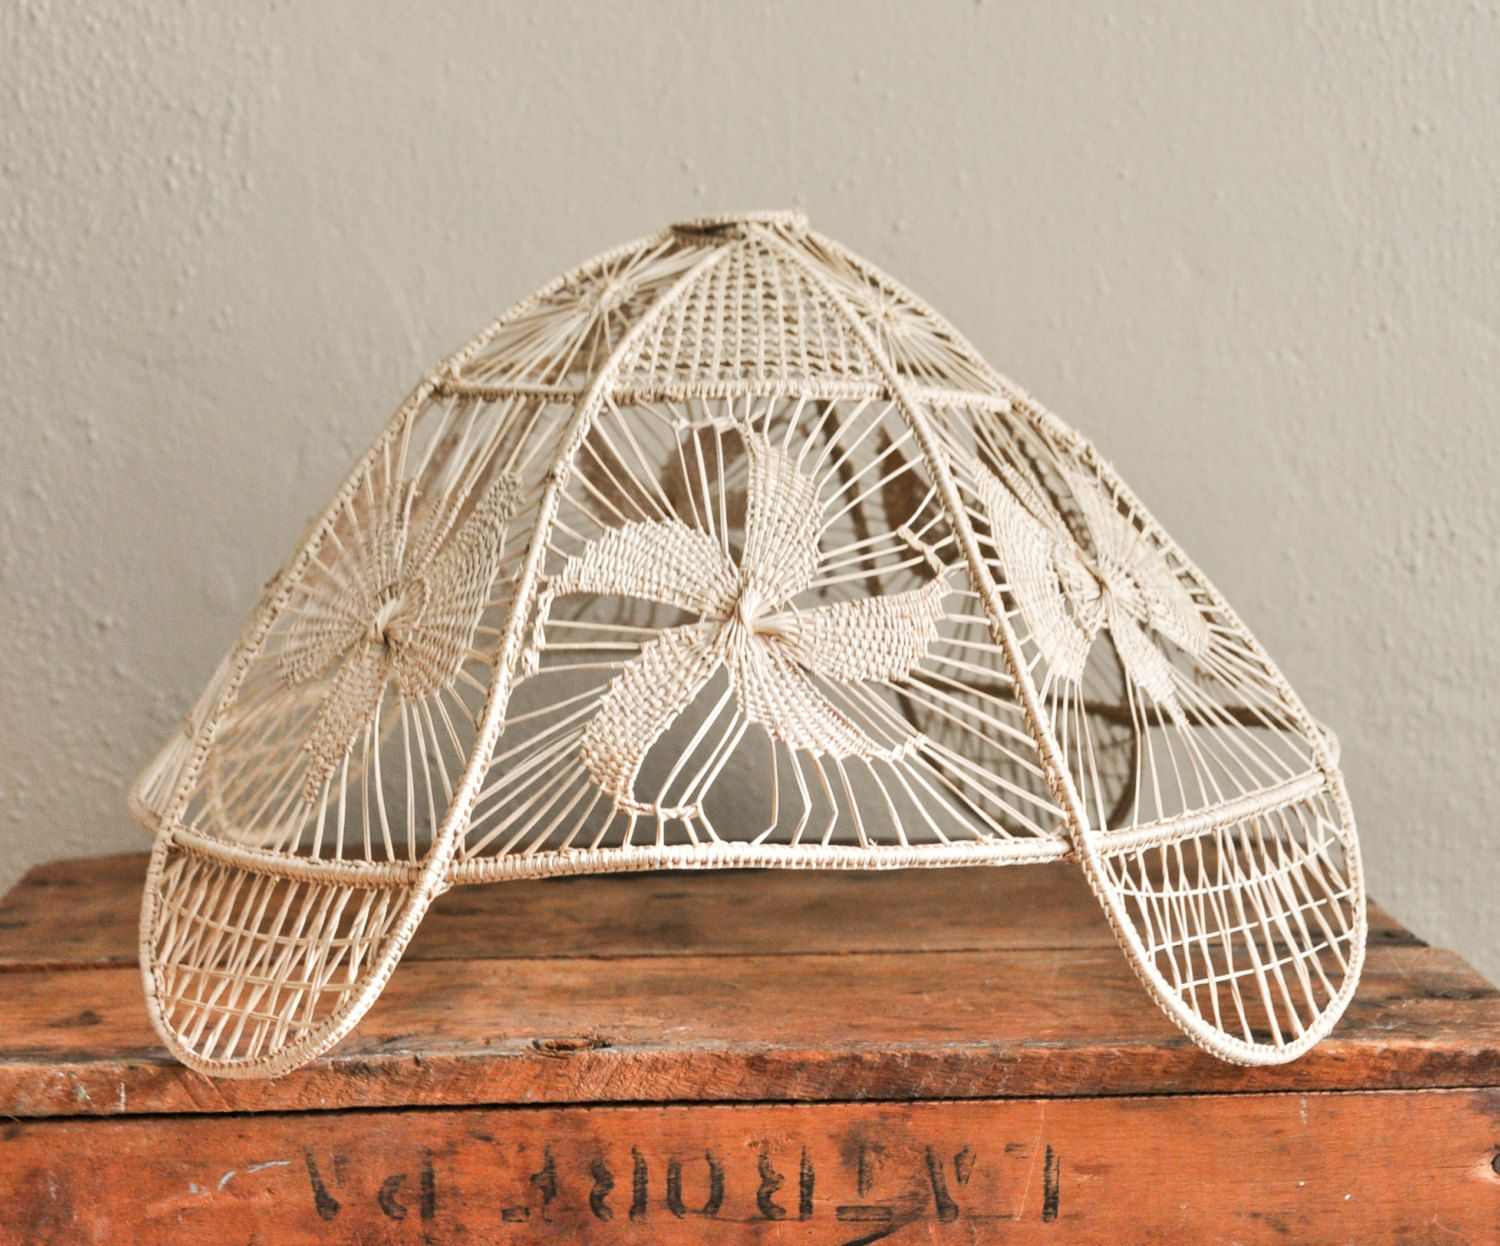 Vintage Handmade Woven Lamp Shade Beautiful Weaving Grass Basket Straw Macrame by drowsySwords on Etsy